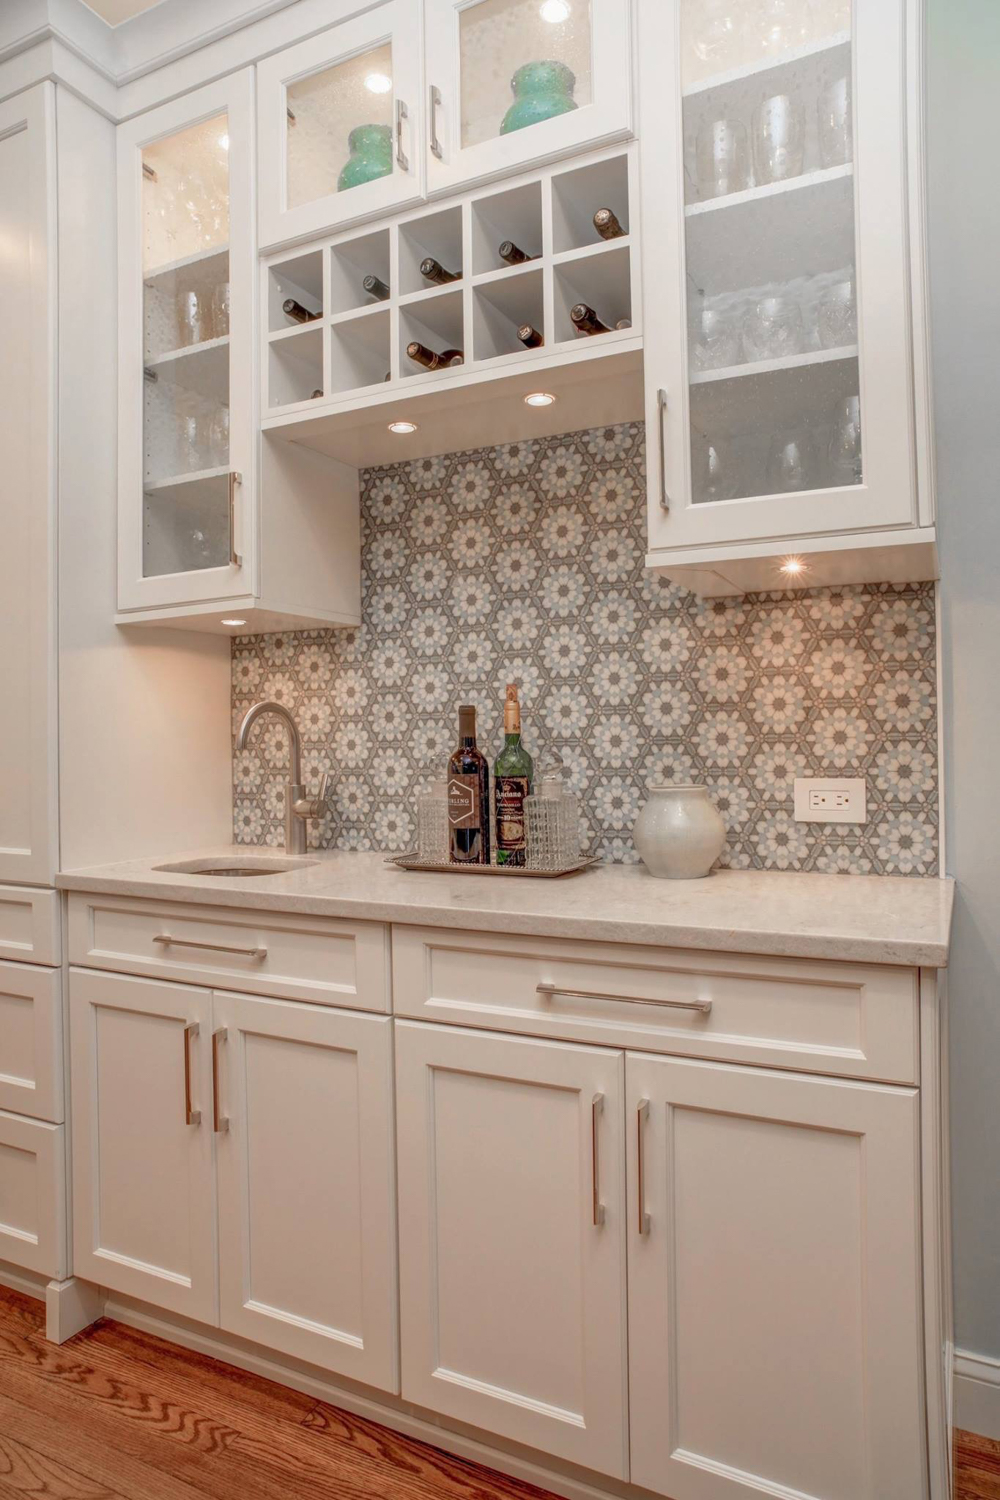 Decorative tile backsplash 1 jpg